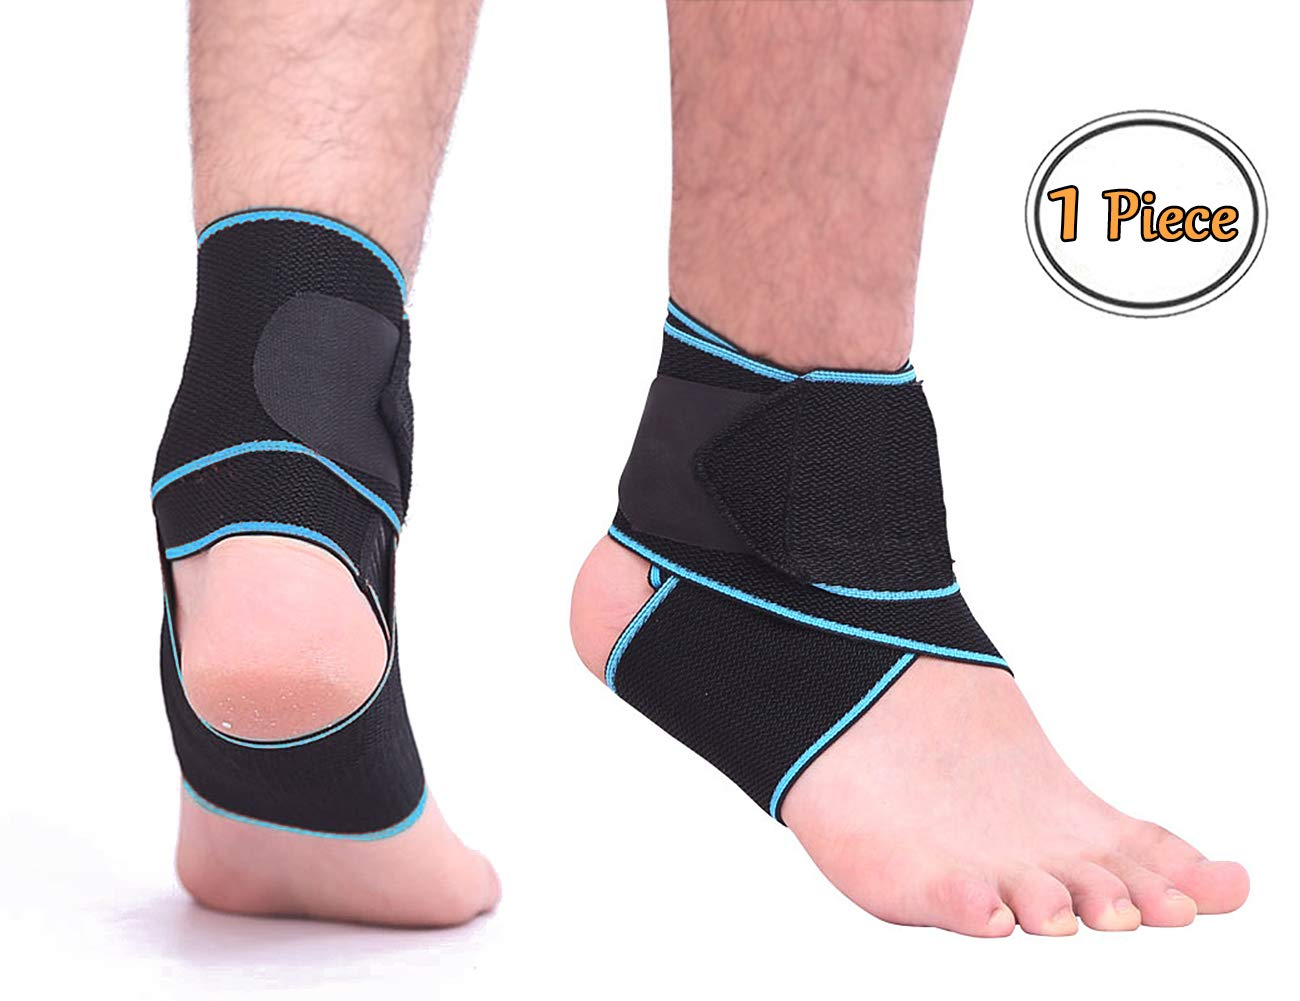 CFR Ankle Support Brace Compression Wrap Adjustable Breathable Ankle Strap Bandage for Sport Protect, Sprain, Plantar Fasciitis One Pair,Blue UPS Post